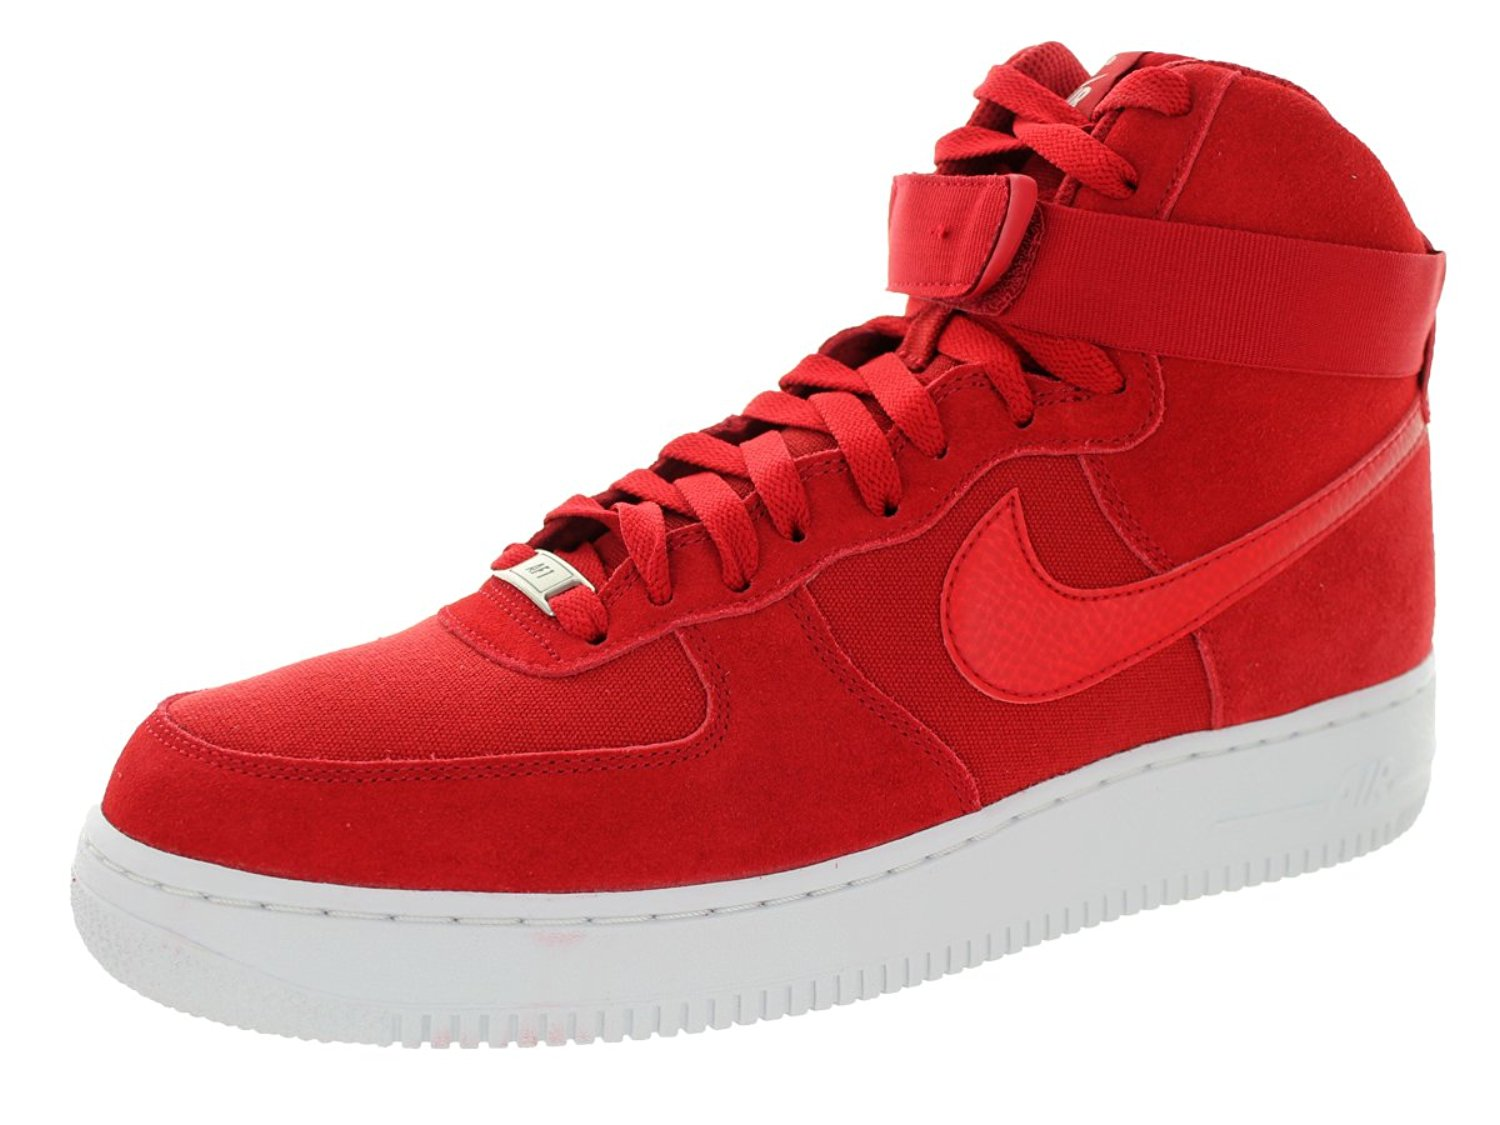 930f8db9 Get Quotations · Nike Men's Air Force 1 High '07 Gym Red/Gym Red/White  Basketball